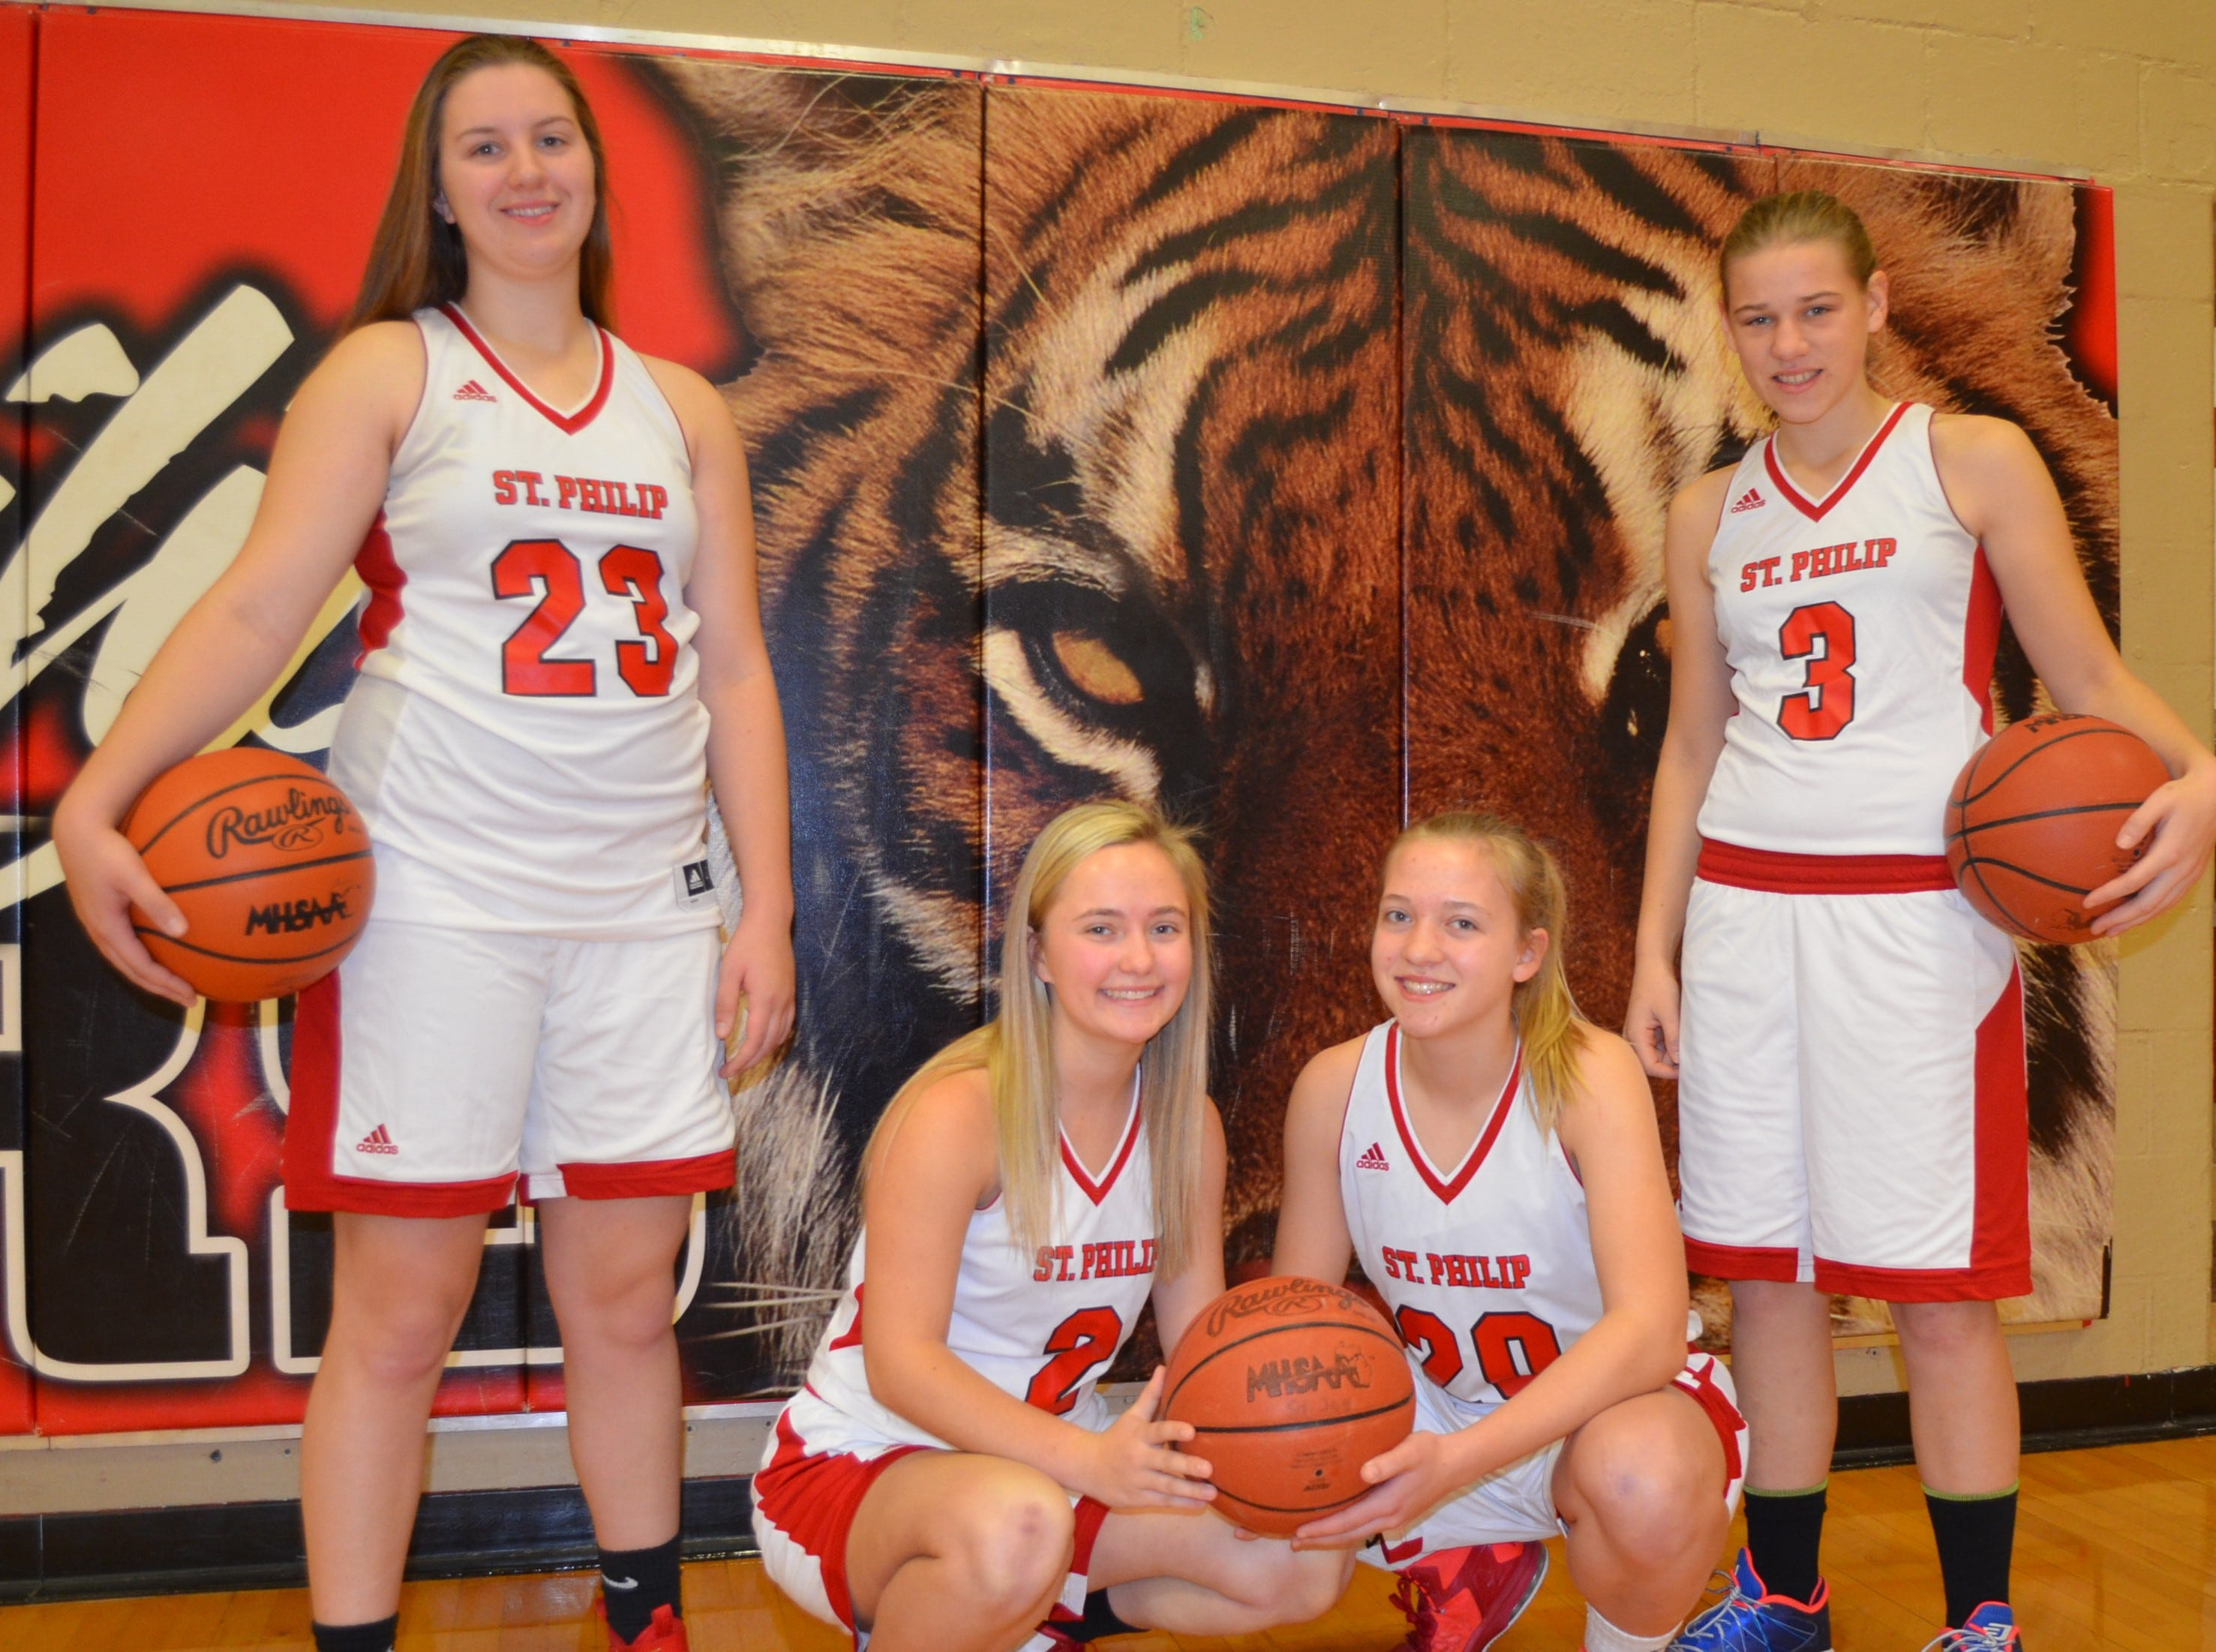 The returning leaders for the St. Philip girls basketball team include, from left, Abbie Lahr, Alex Pessetti, Elsa Mullis and Irene Hibbard.